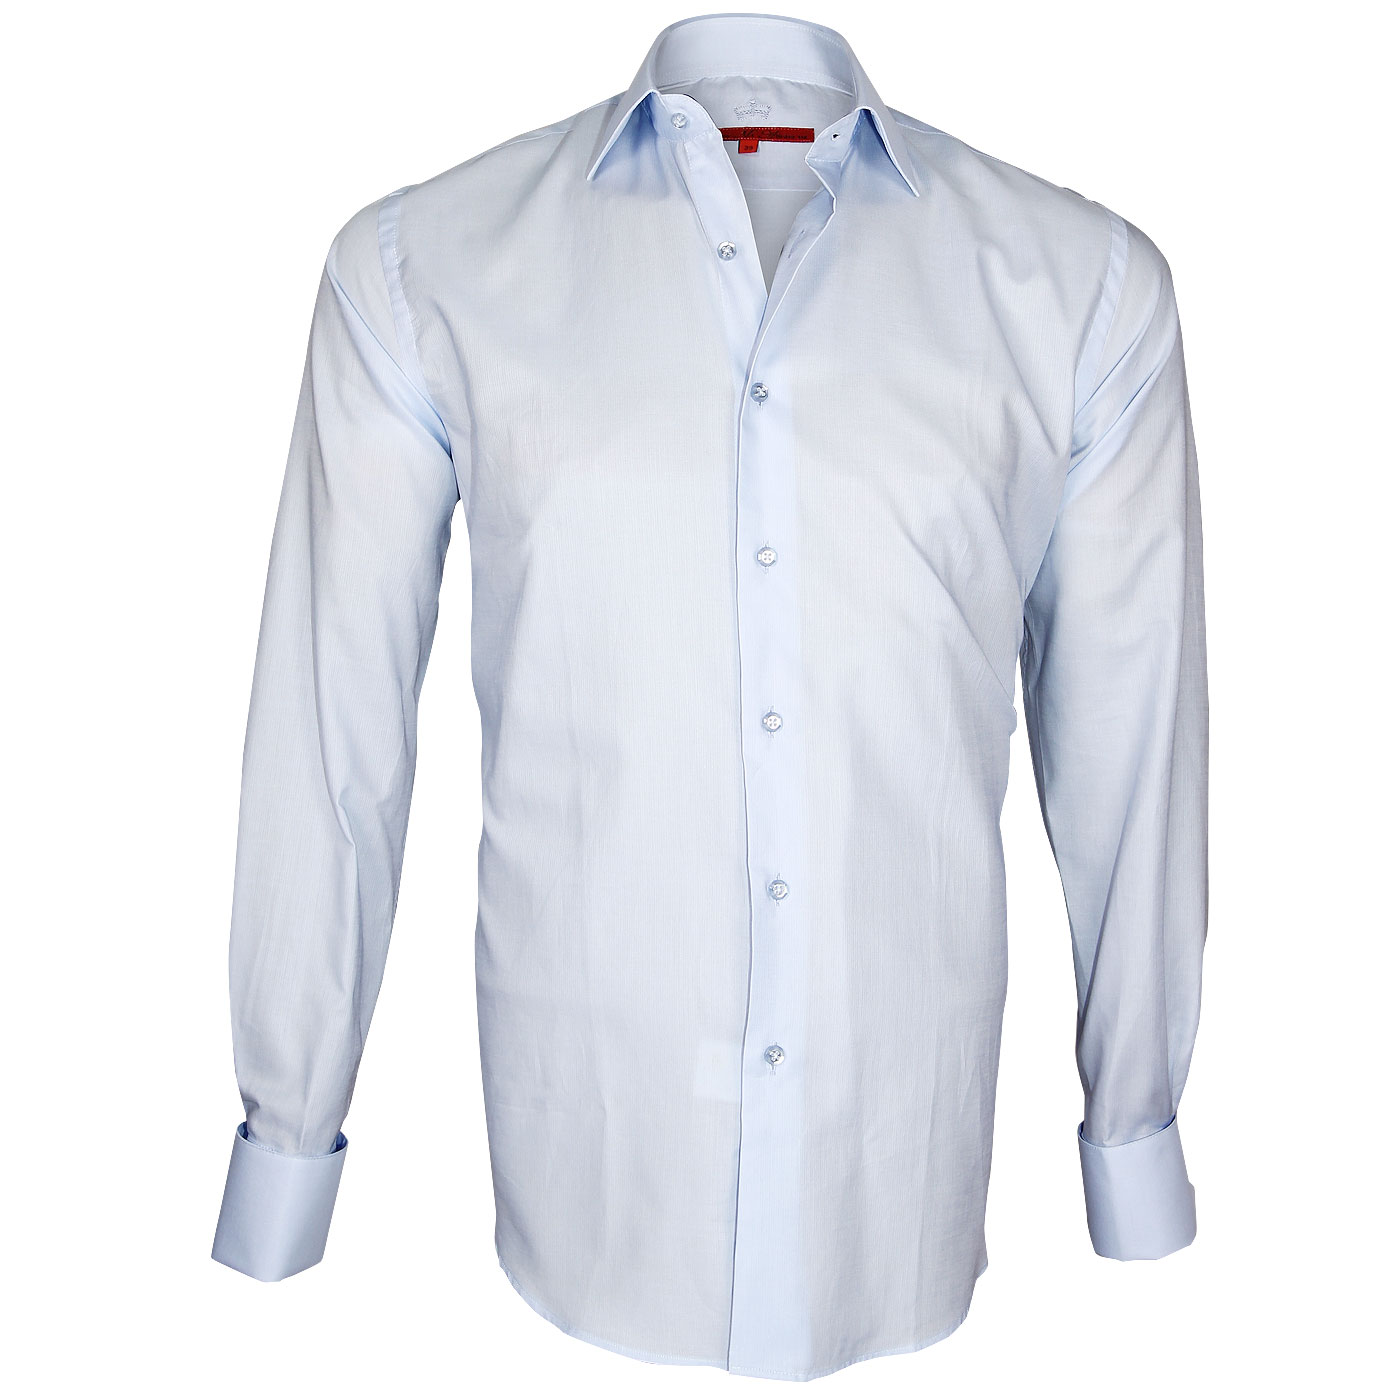 French cuffs dress shirt for men: WebMenshirts at your service